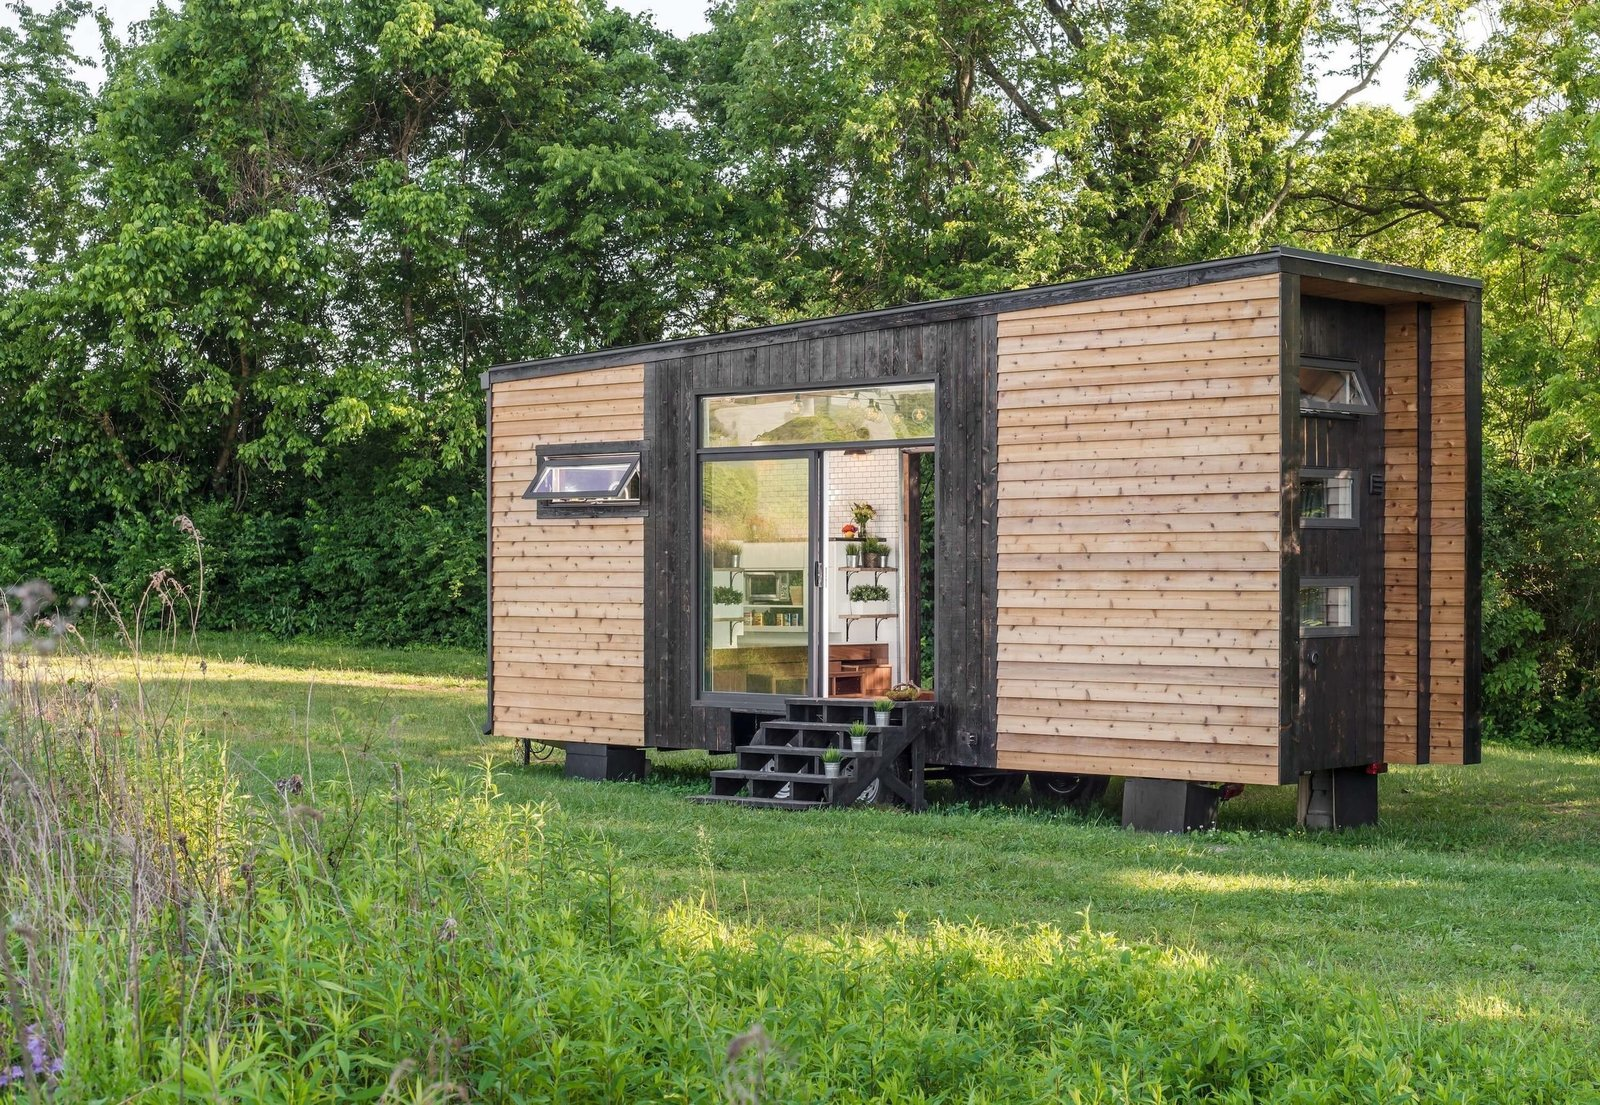 New Frontier Tiny Homes's Alpha, is one of the fanciest tiny homes around. The 240-square-foot modern design is super functional and good looking to boot. They also have a larger model, Escher, a model that at around 300 square feet, is more spacious and offers two bedrooms.